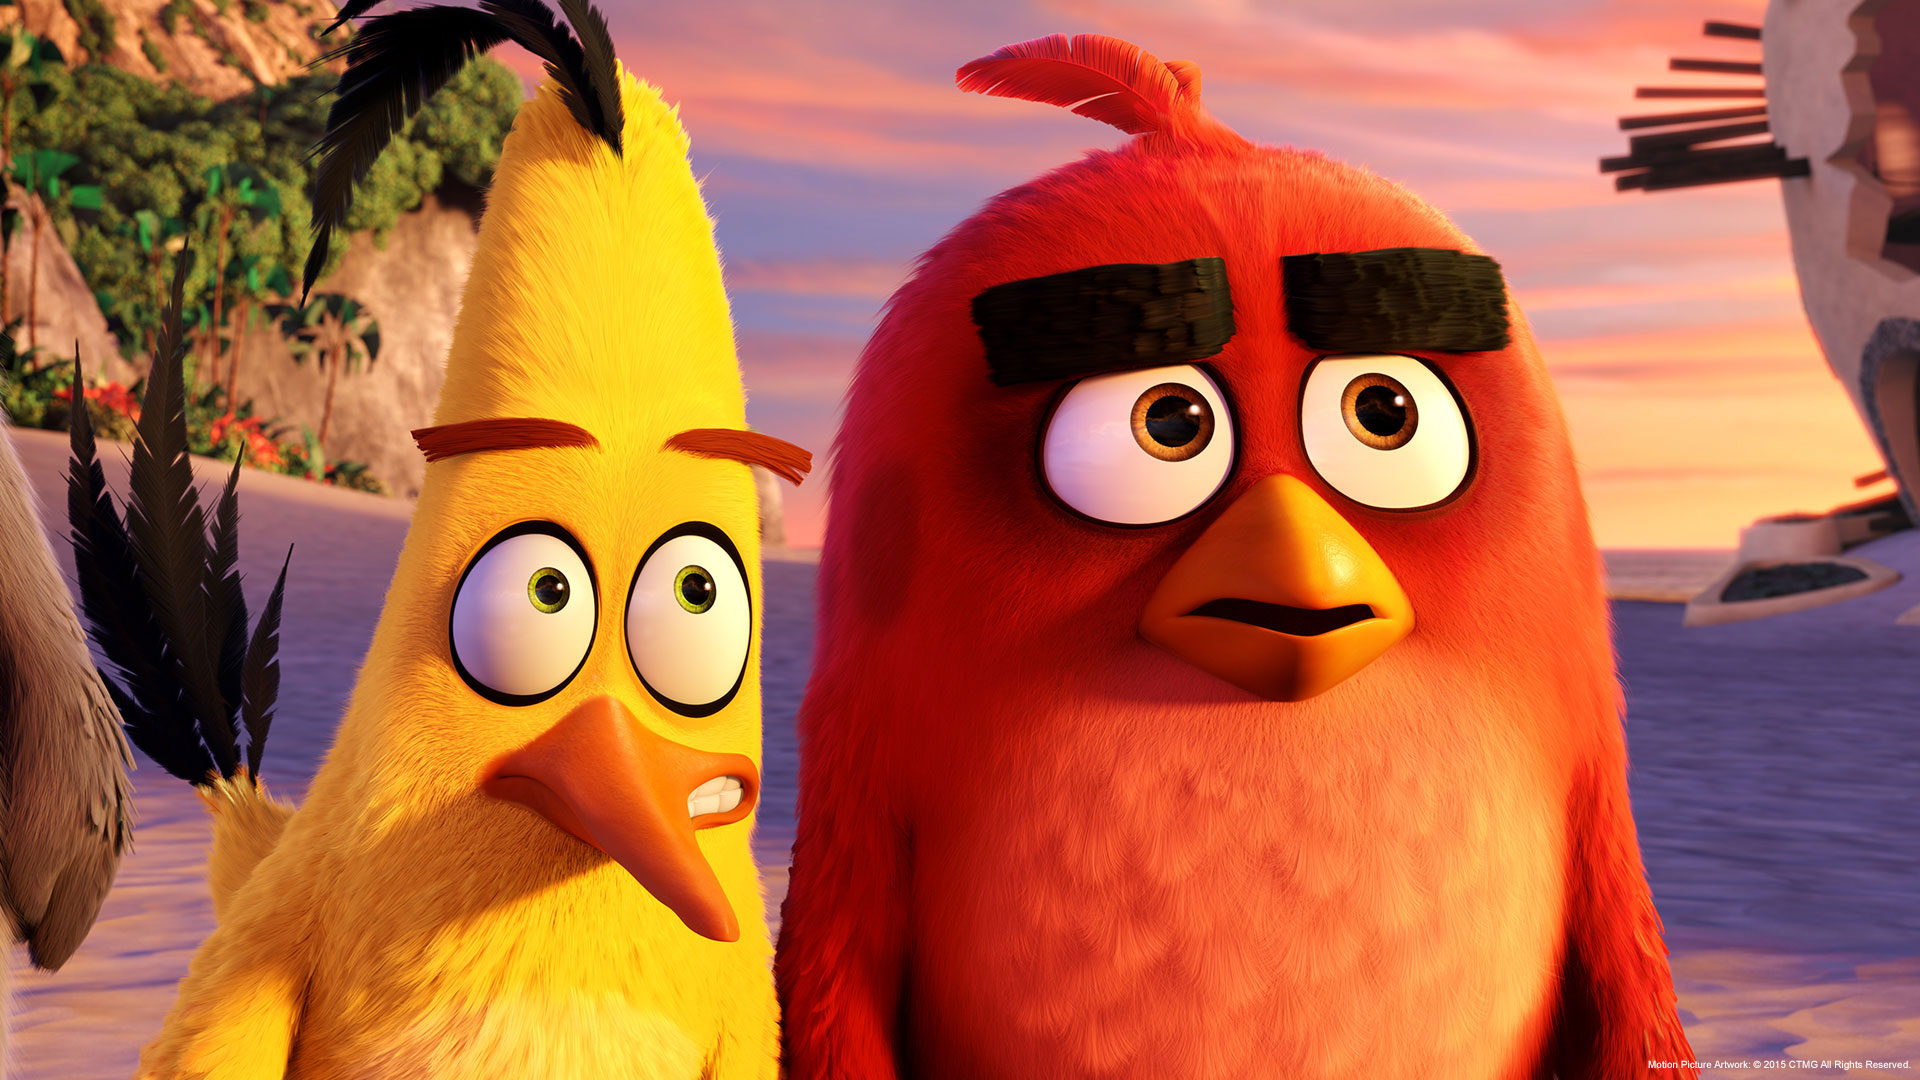 The Angry Birds Movie 2016 HD Desktop iPhone iPad Wallpapers 1920x1080